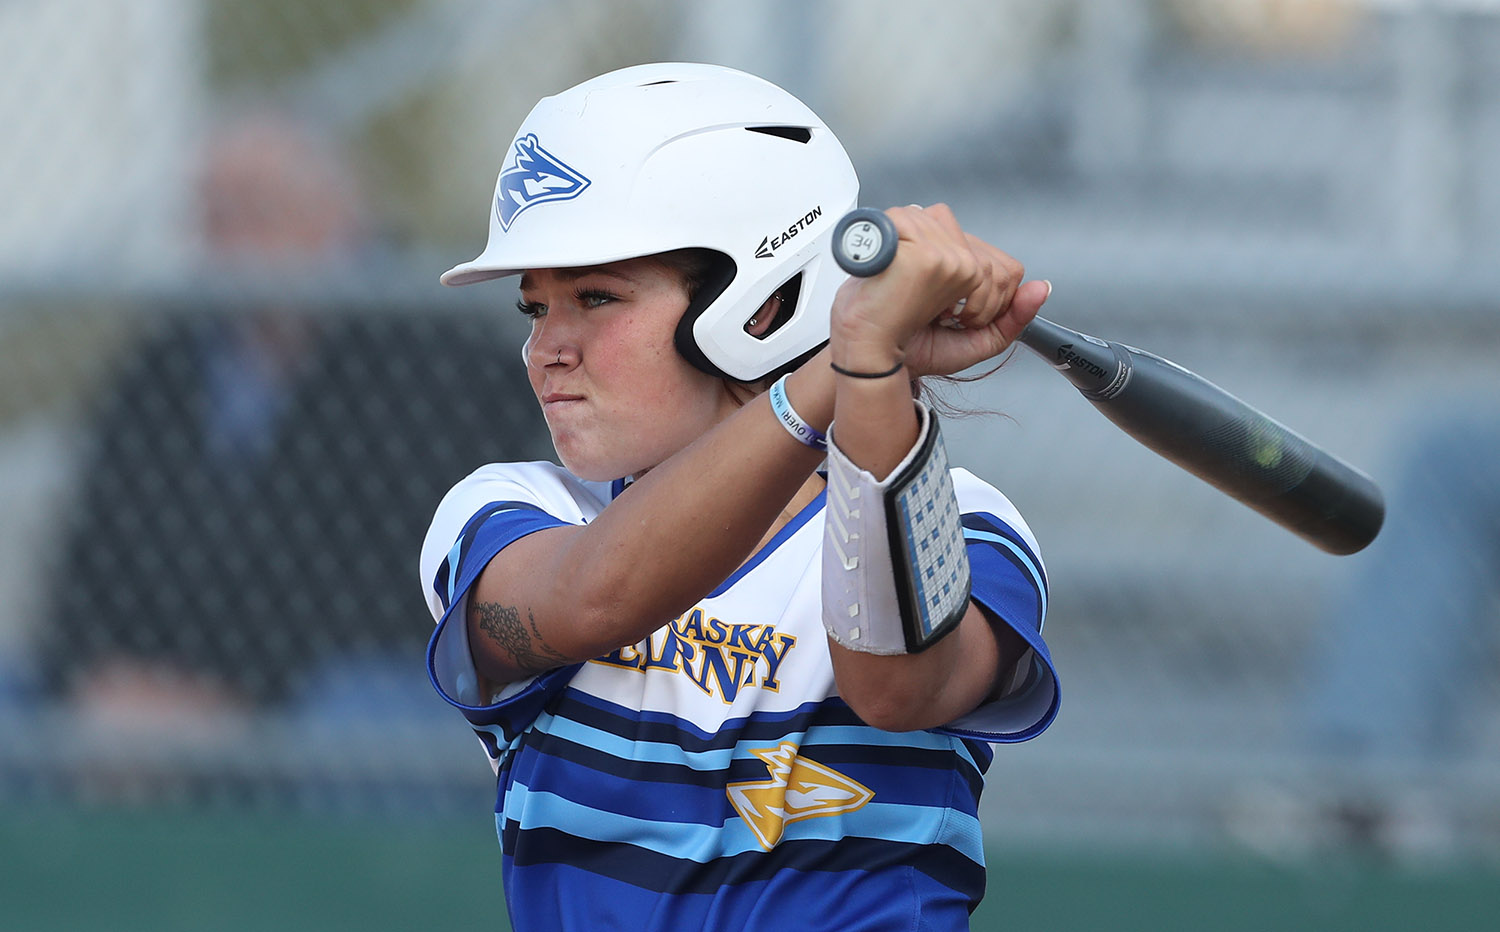 UNK senior Kaitie Johnson finished the 2020 season with a career-best .324 batting average and .676 slugging percentage to go along with 12 RBI, nine runs scored and a team-leading four homers. (Photos by Corbey R. Dorsey, UNK Communications)